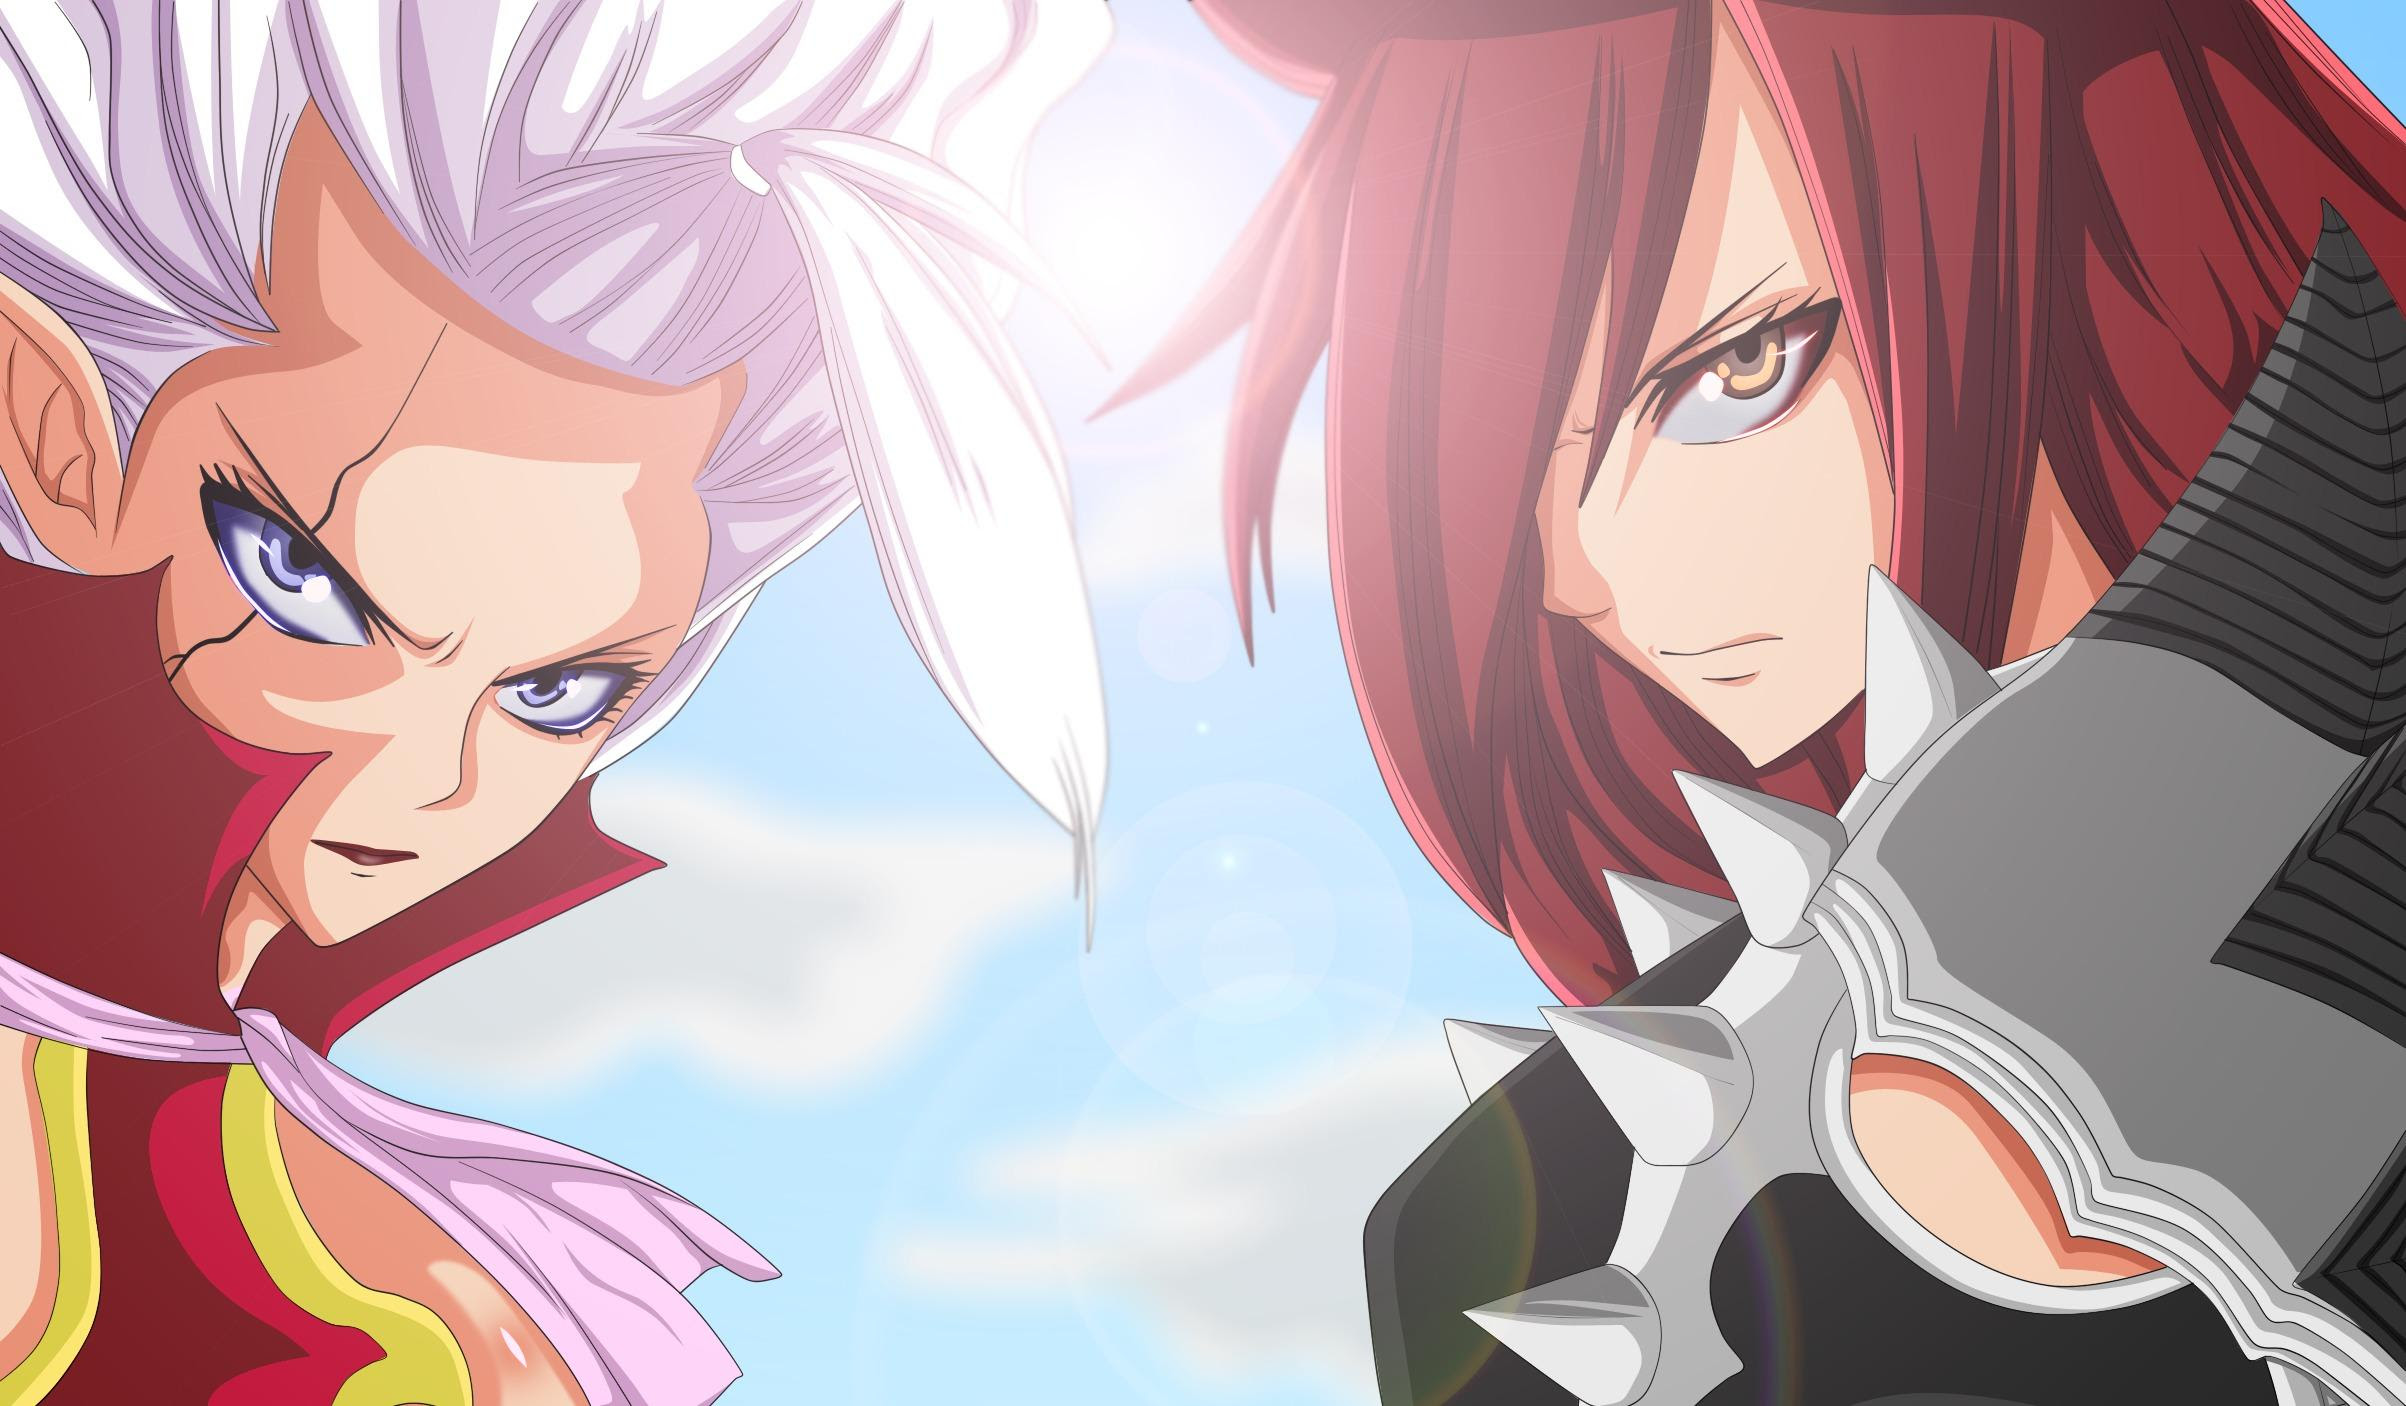 Hd Fairy Tail Erza Scarlet Mirajane Strauss Face Anime Girl